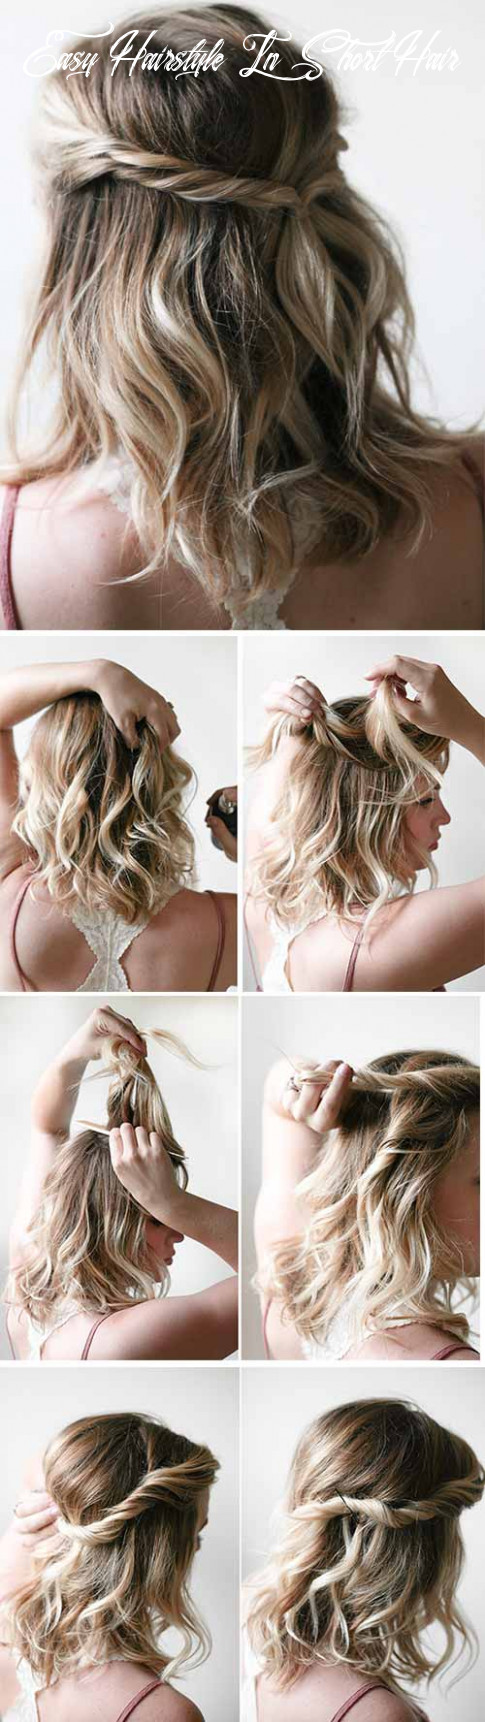 12 incredible diy short hairstyles a step by step guide easy hairstyle in short hair